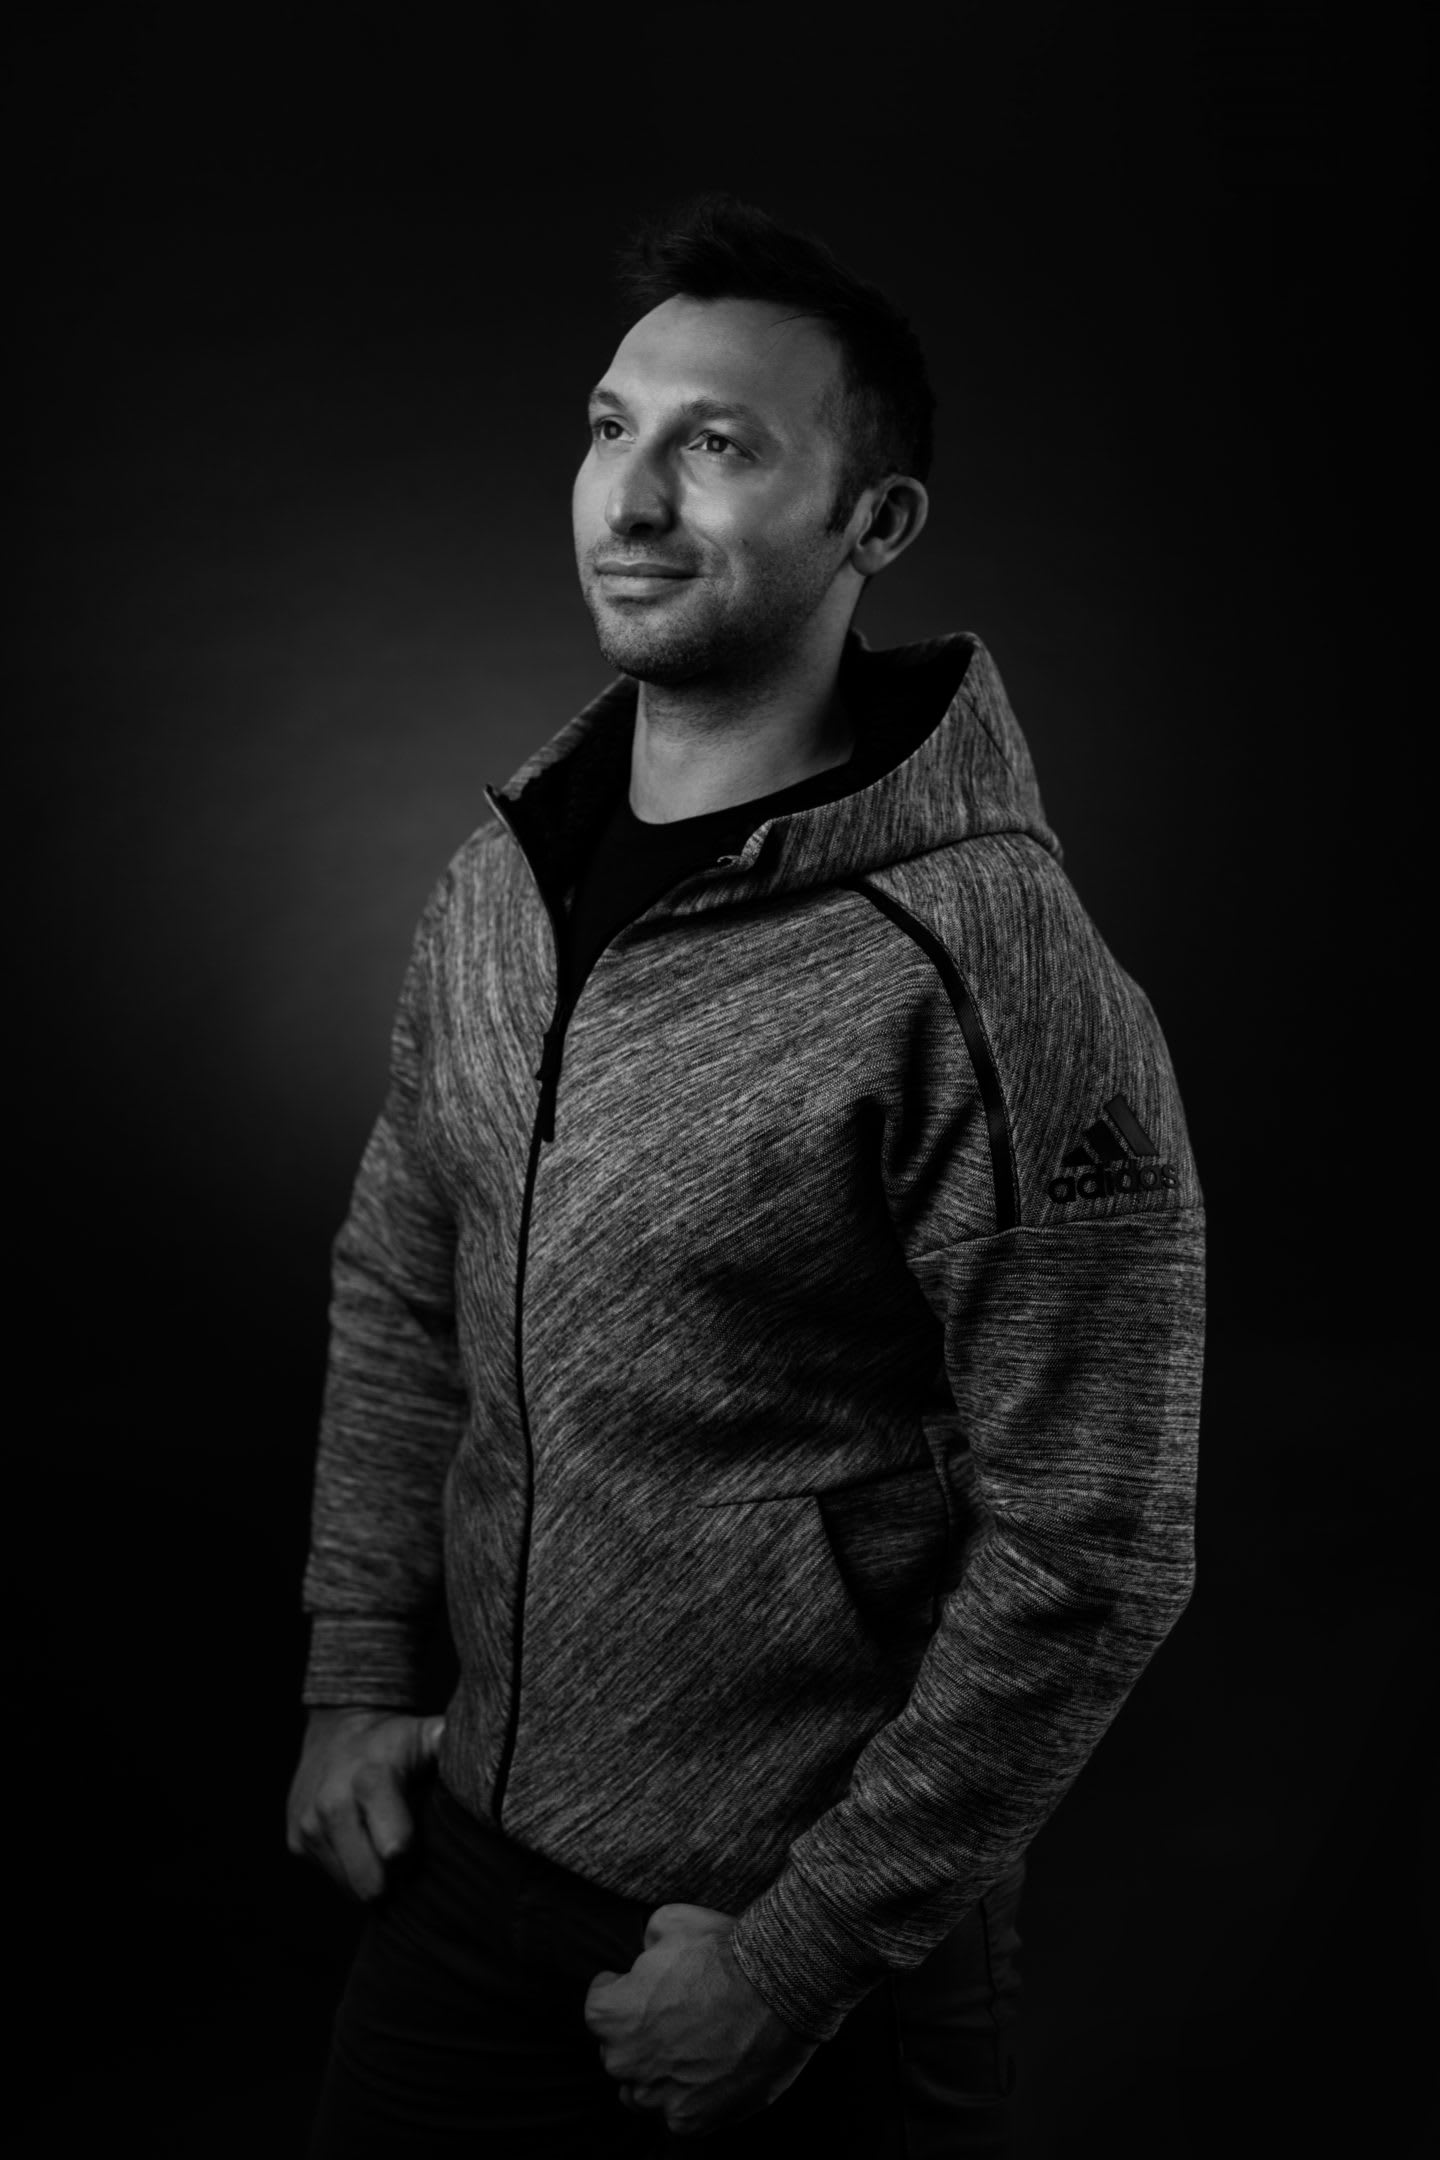 Black and white photo of Ian Thorpe at adidas. Coming out, confidence, mental health, interview, bullies, GamePlan A, youth, support, gay athletes, swimmer, Olympic champion